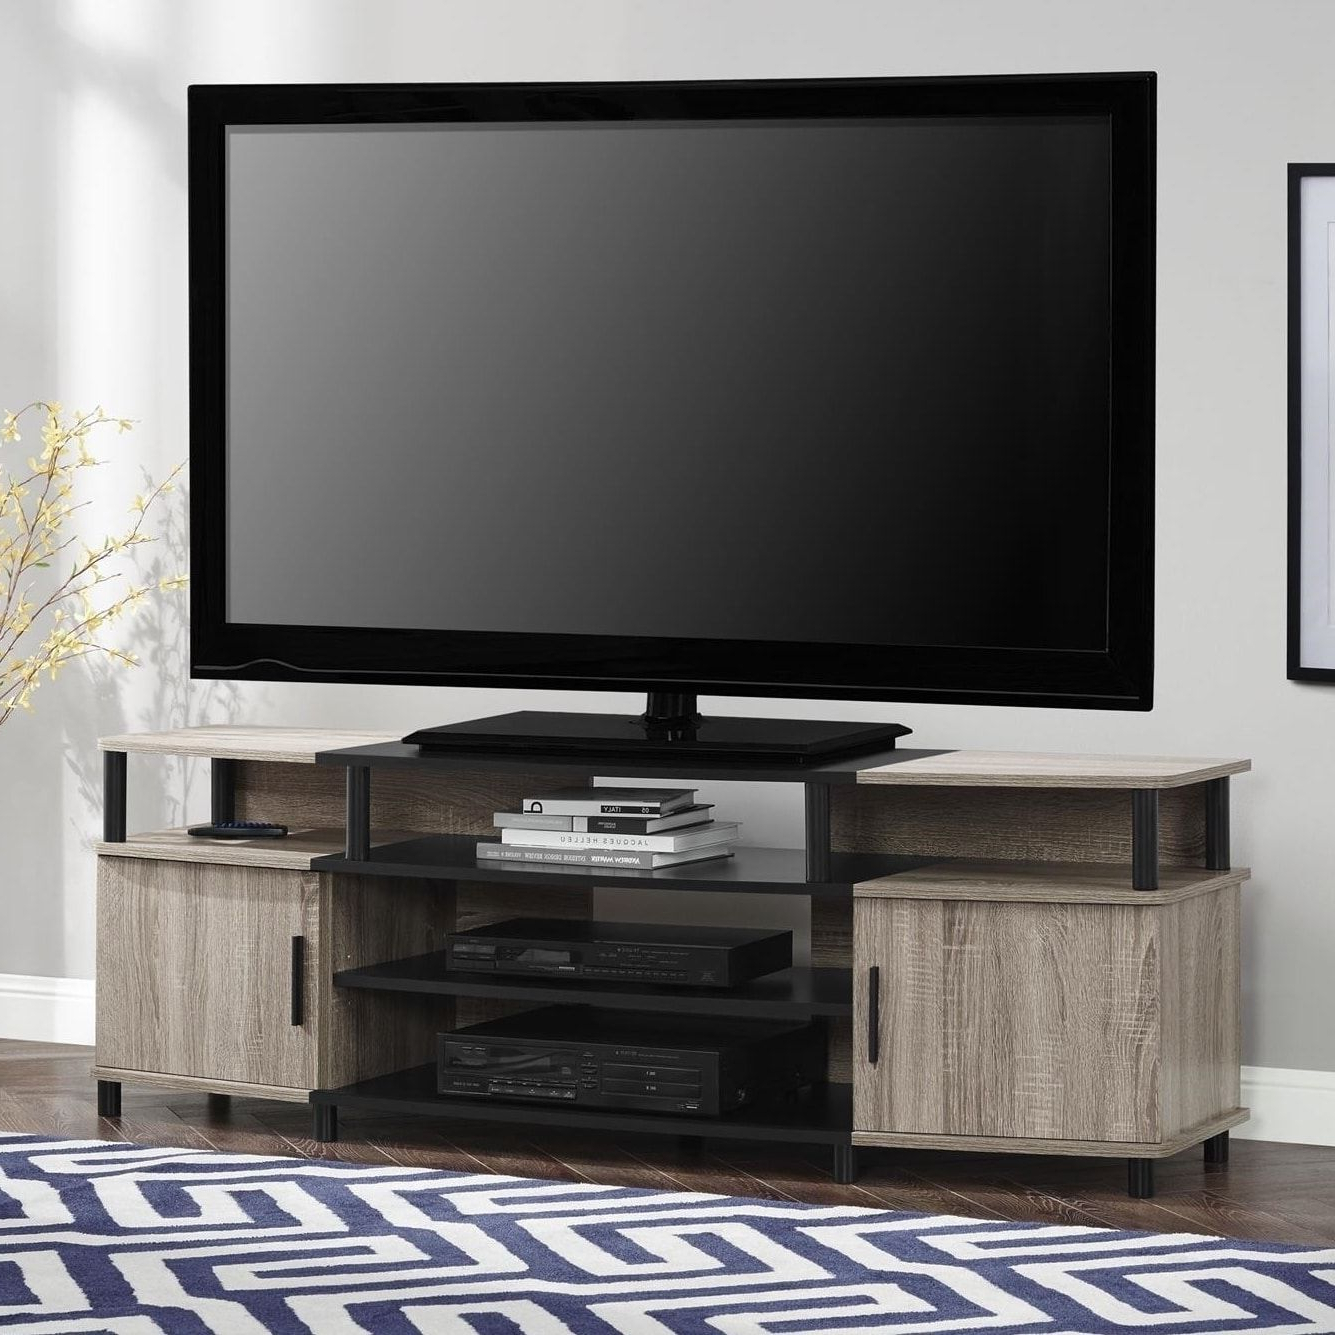 Laurent 70 Inch Tv Stands With Regard To Trendy The Gray Barn Latigo 70 Inch Tv Stand (Sonoma Oak/ Black) In  (View 5 of 20)